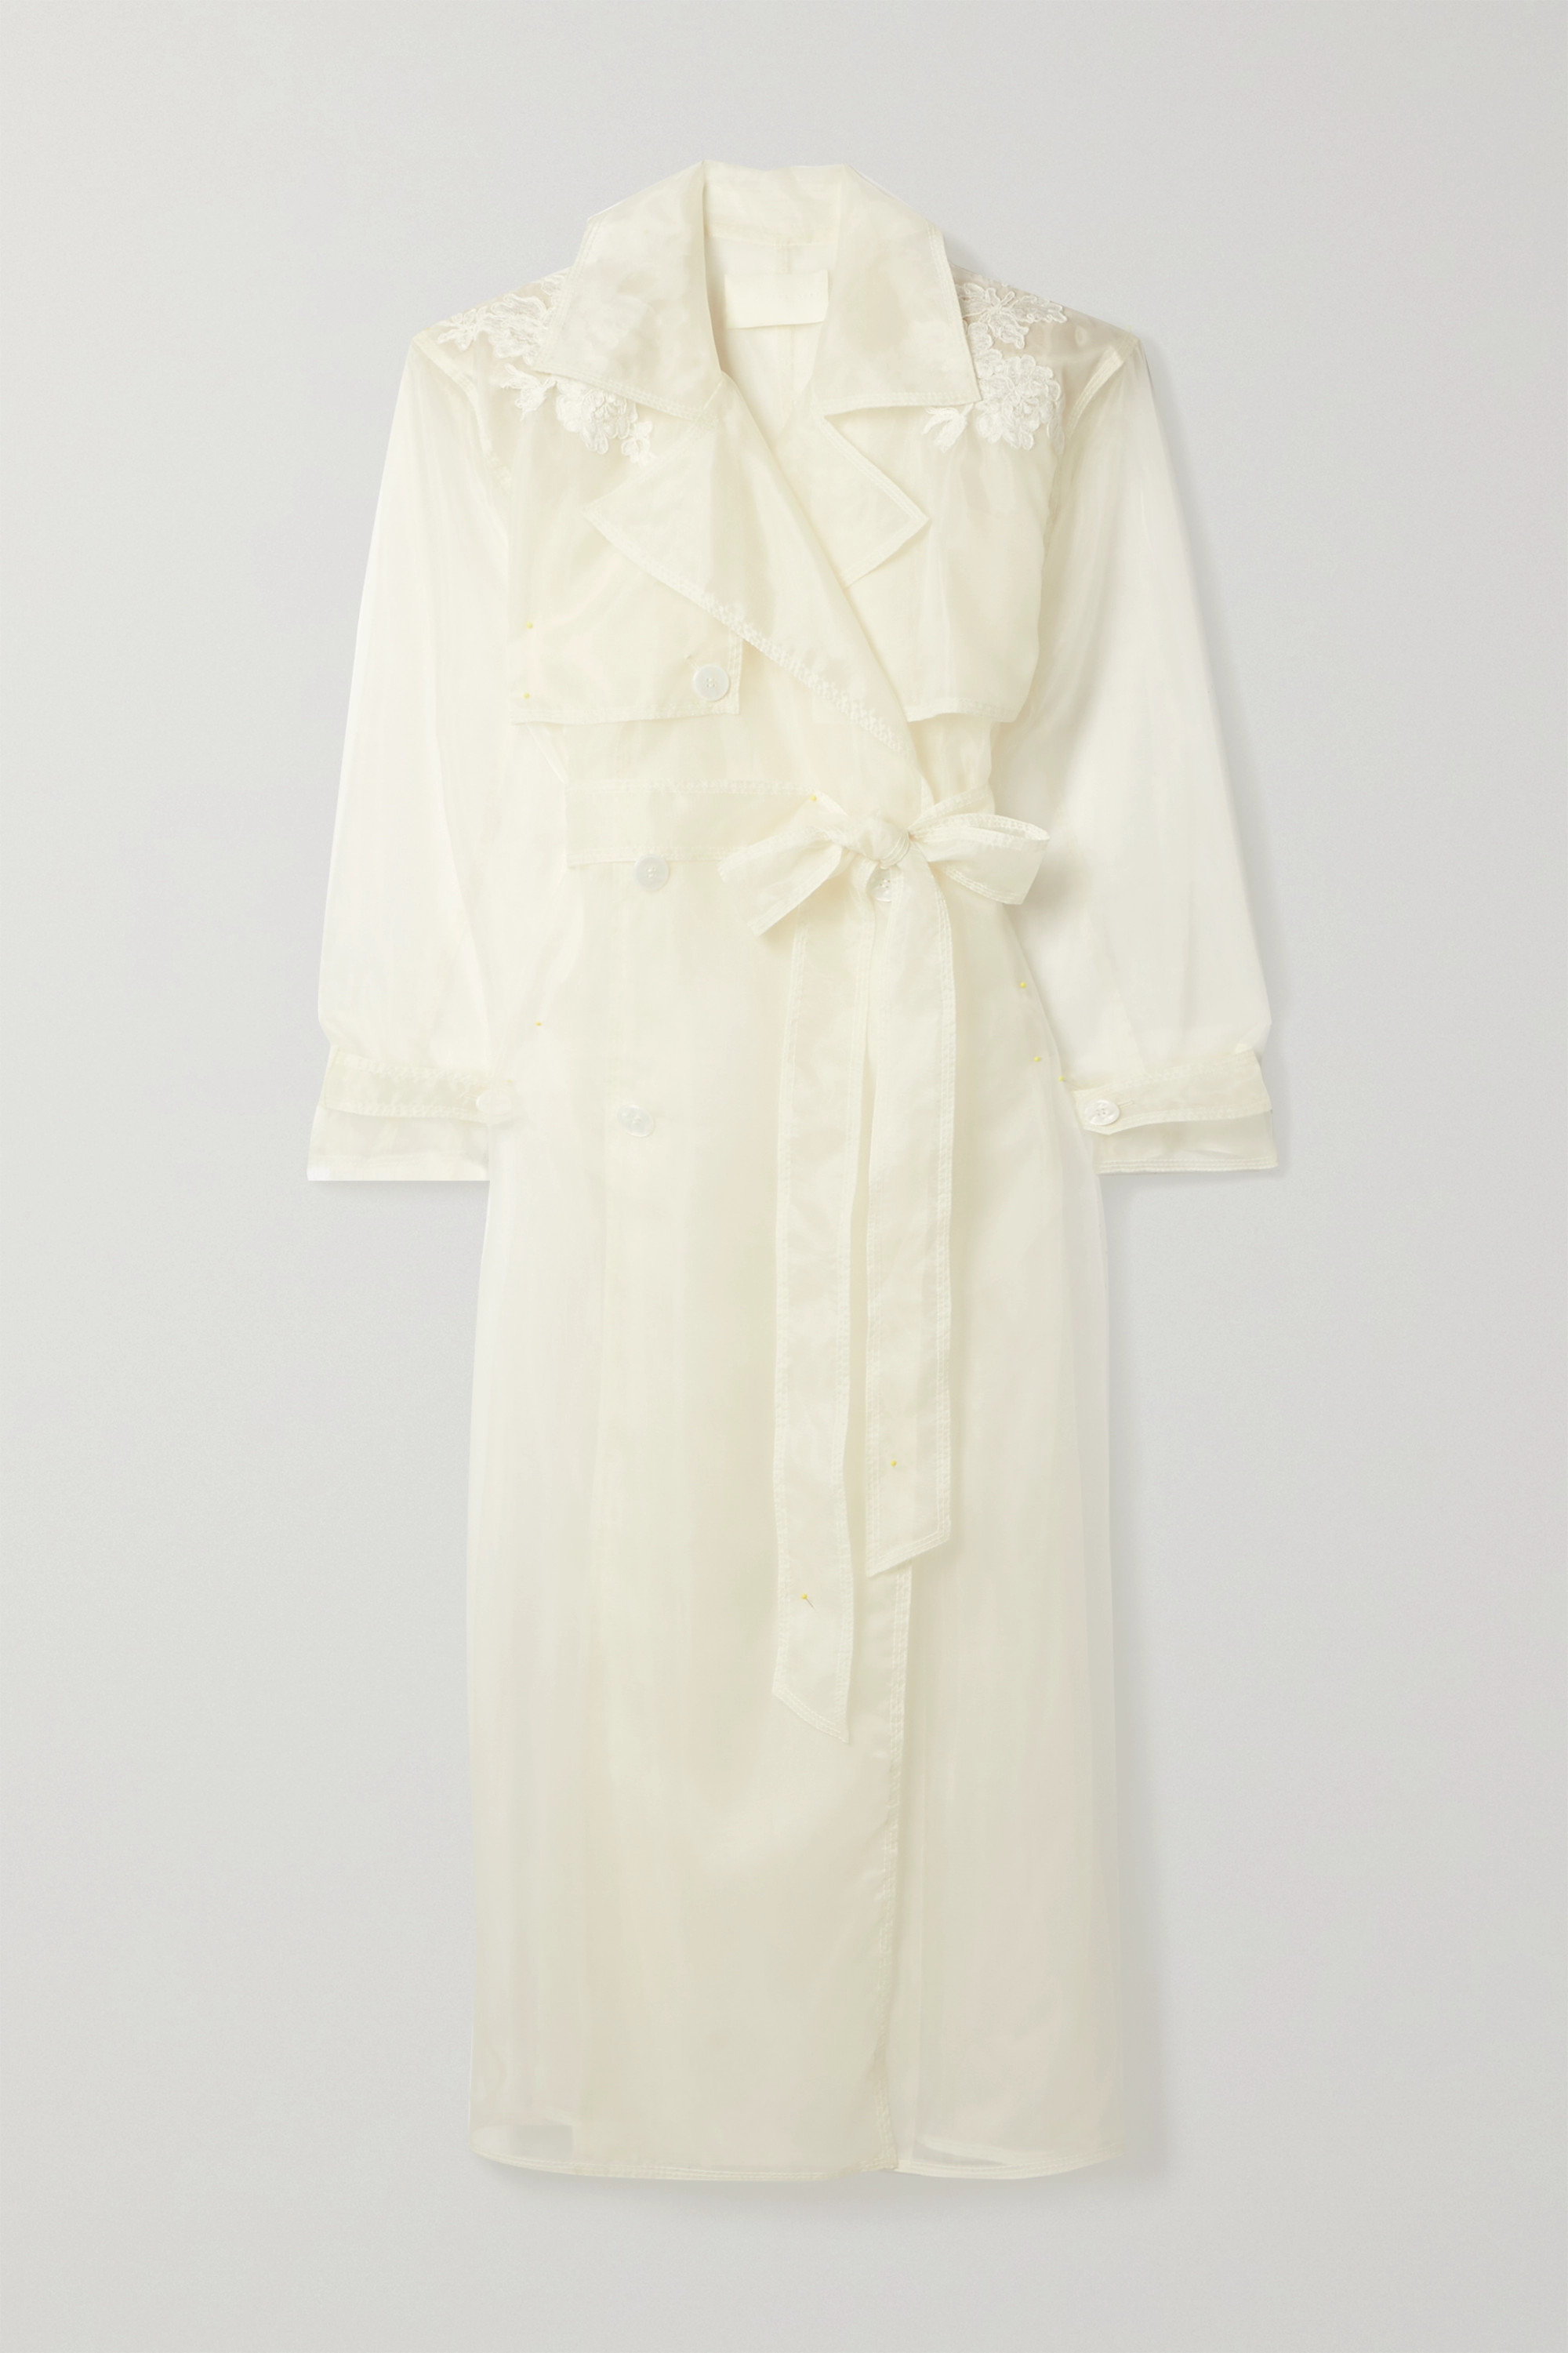 Danielle Frankel Allegra corded lace-trimmed organza and tulle trench coat